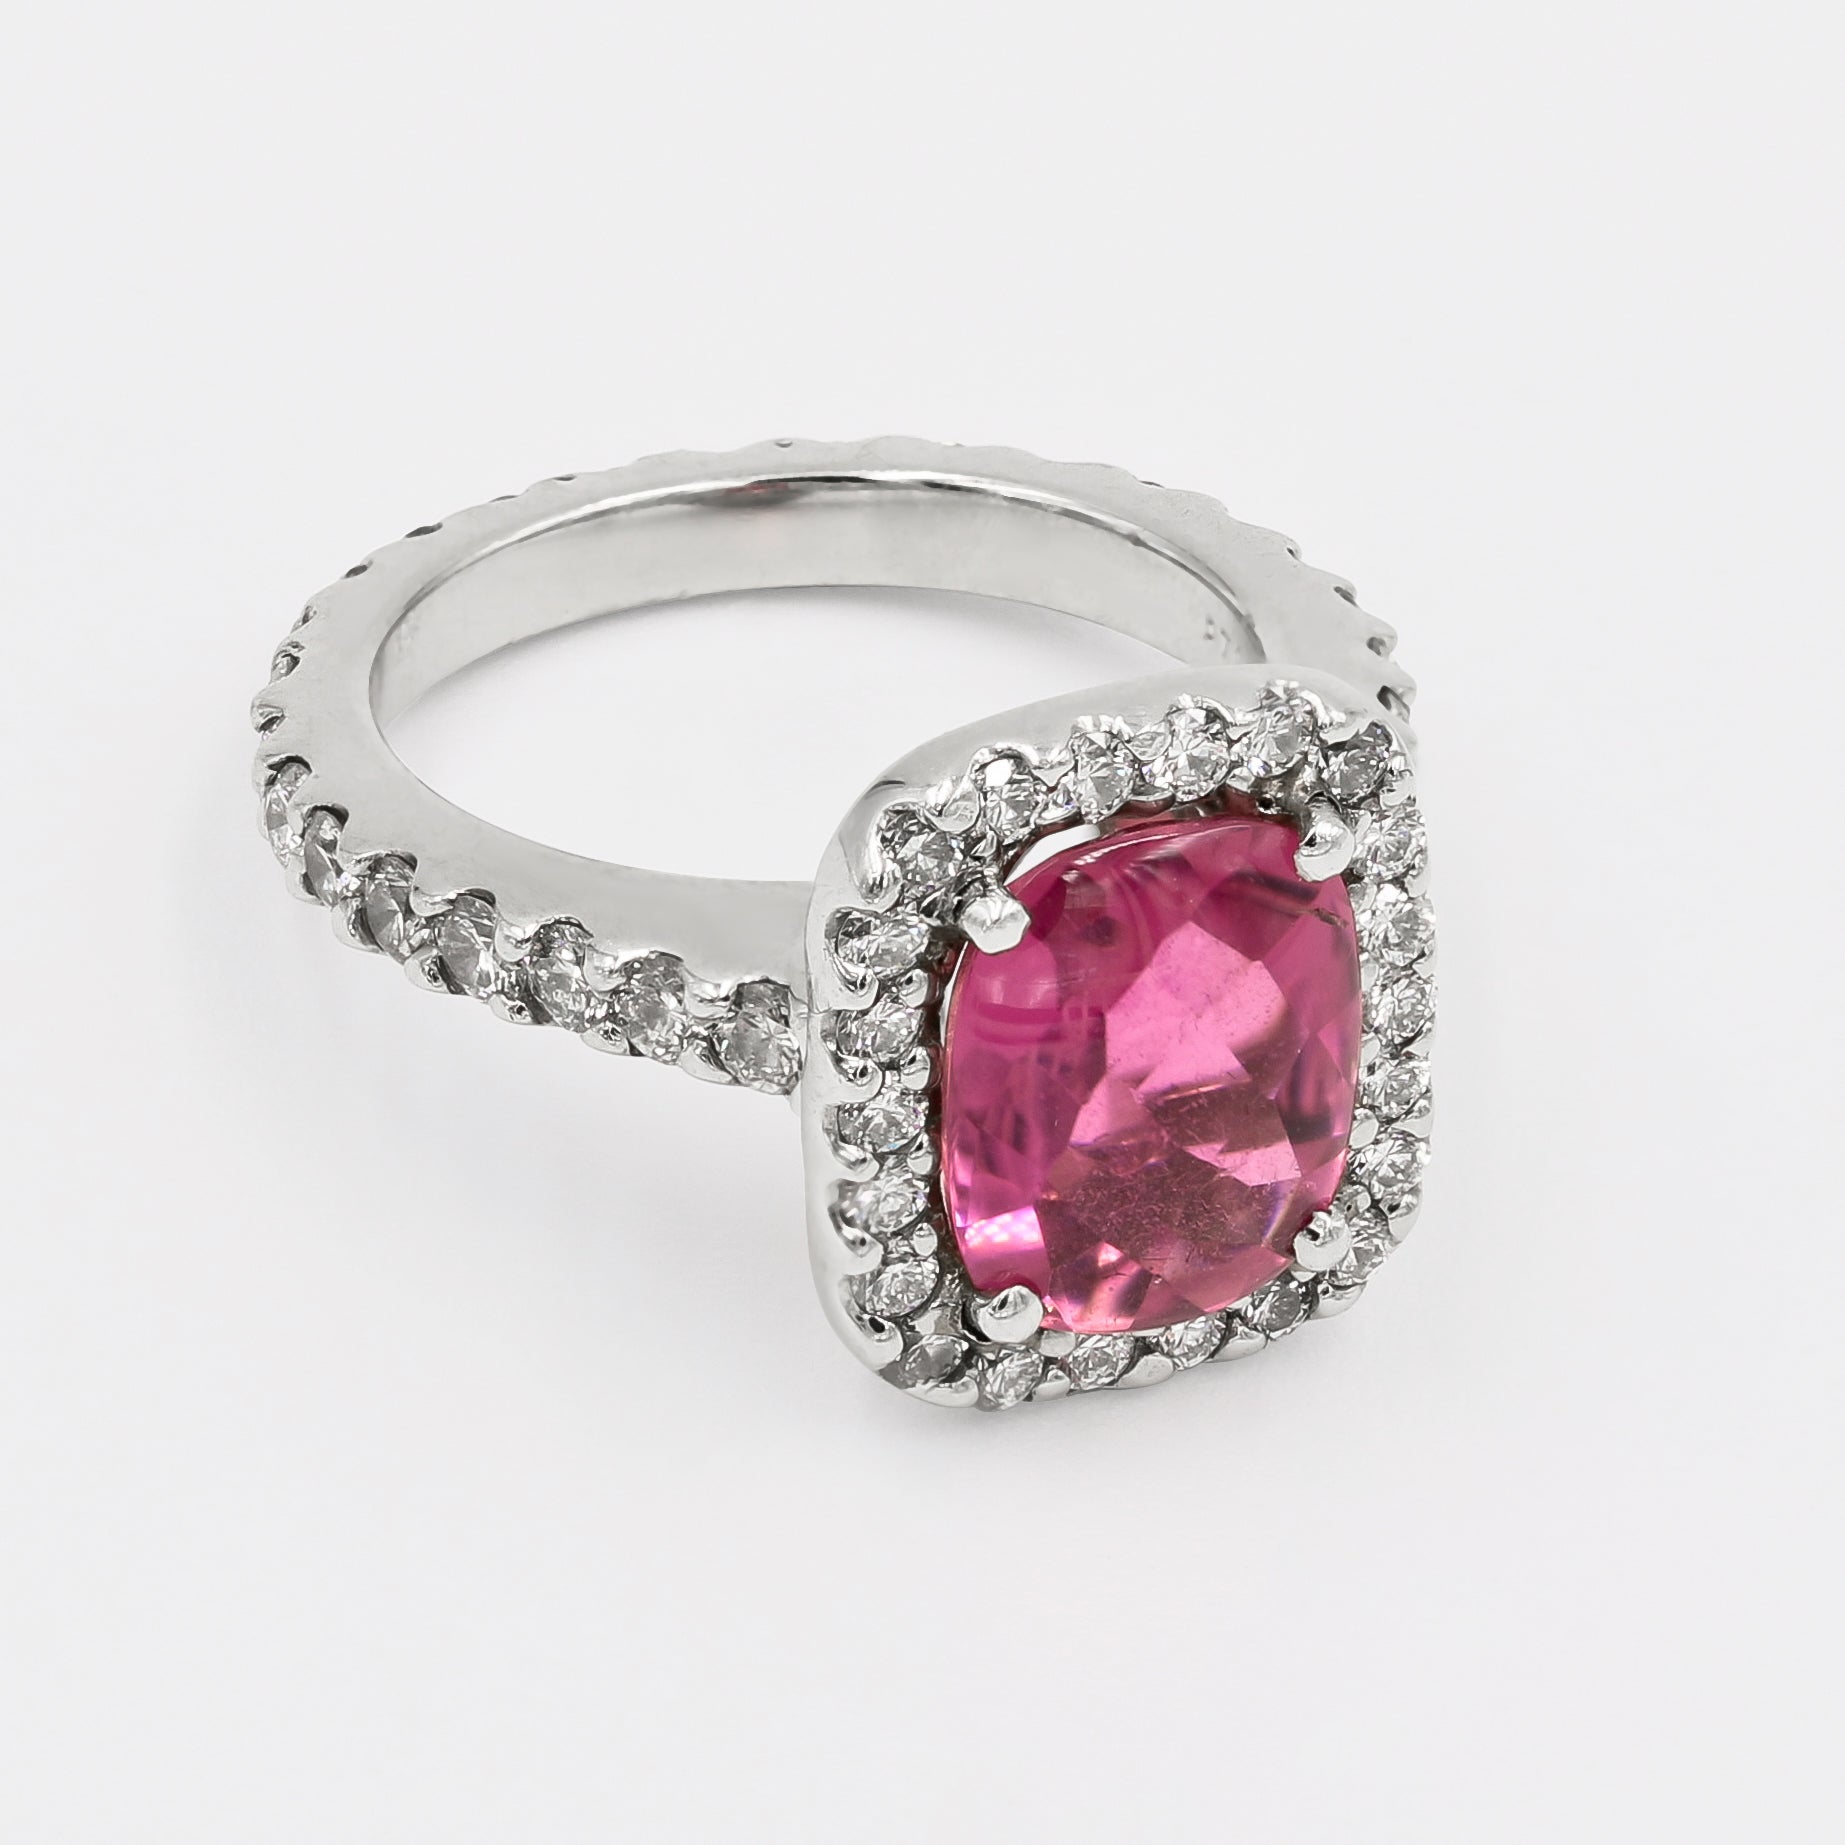 Cabochon Rhodolite Garnet and Diamond Ring